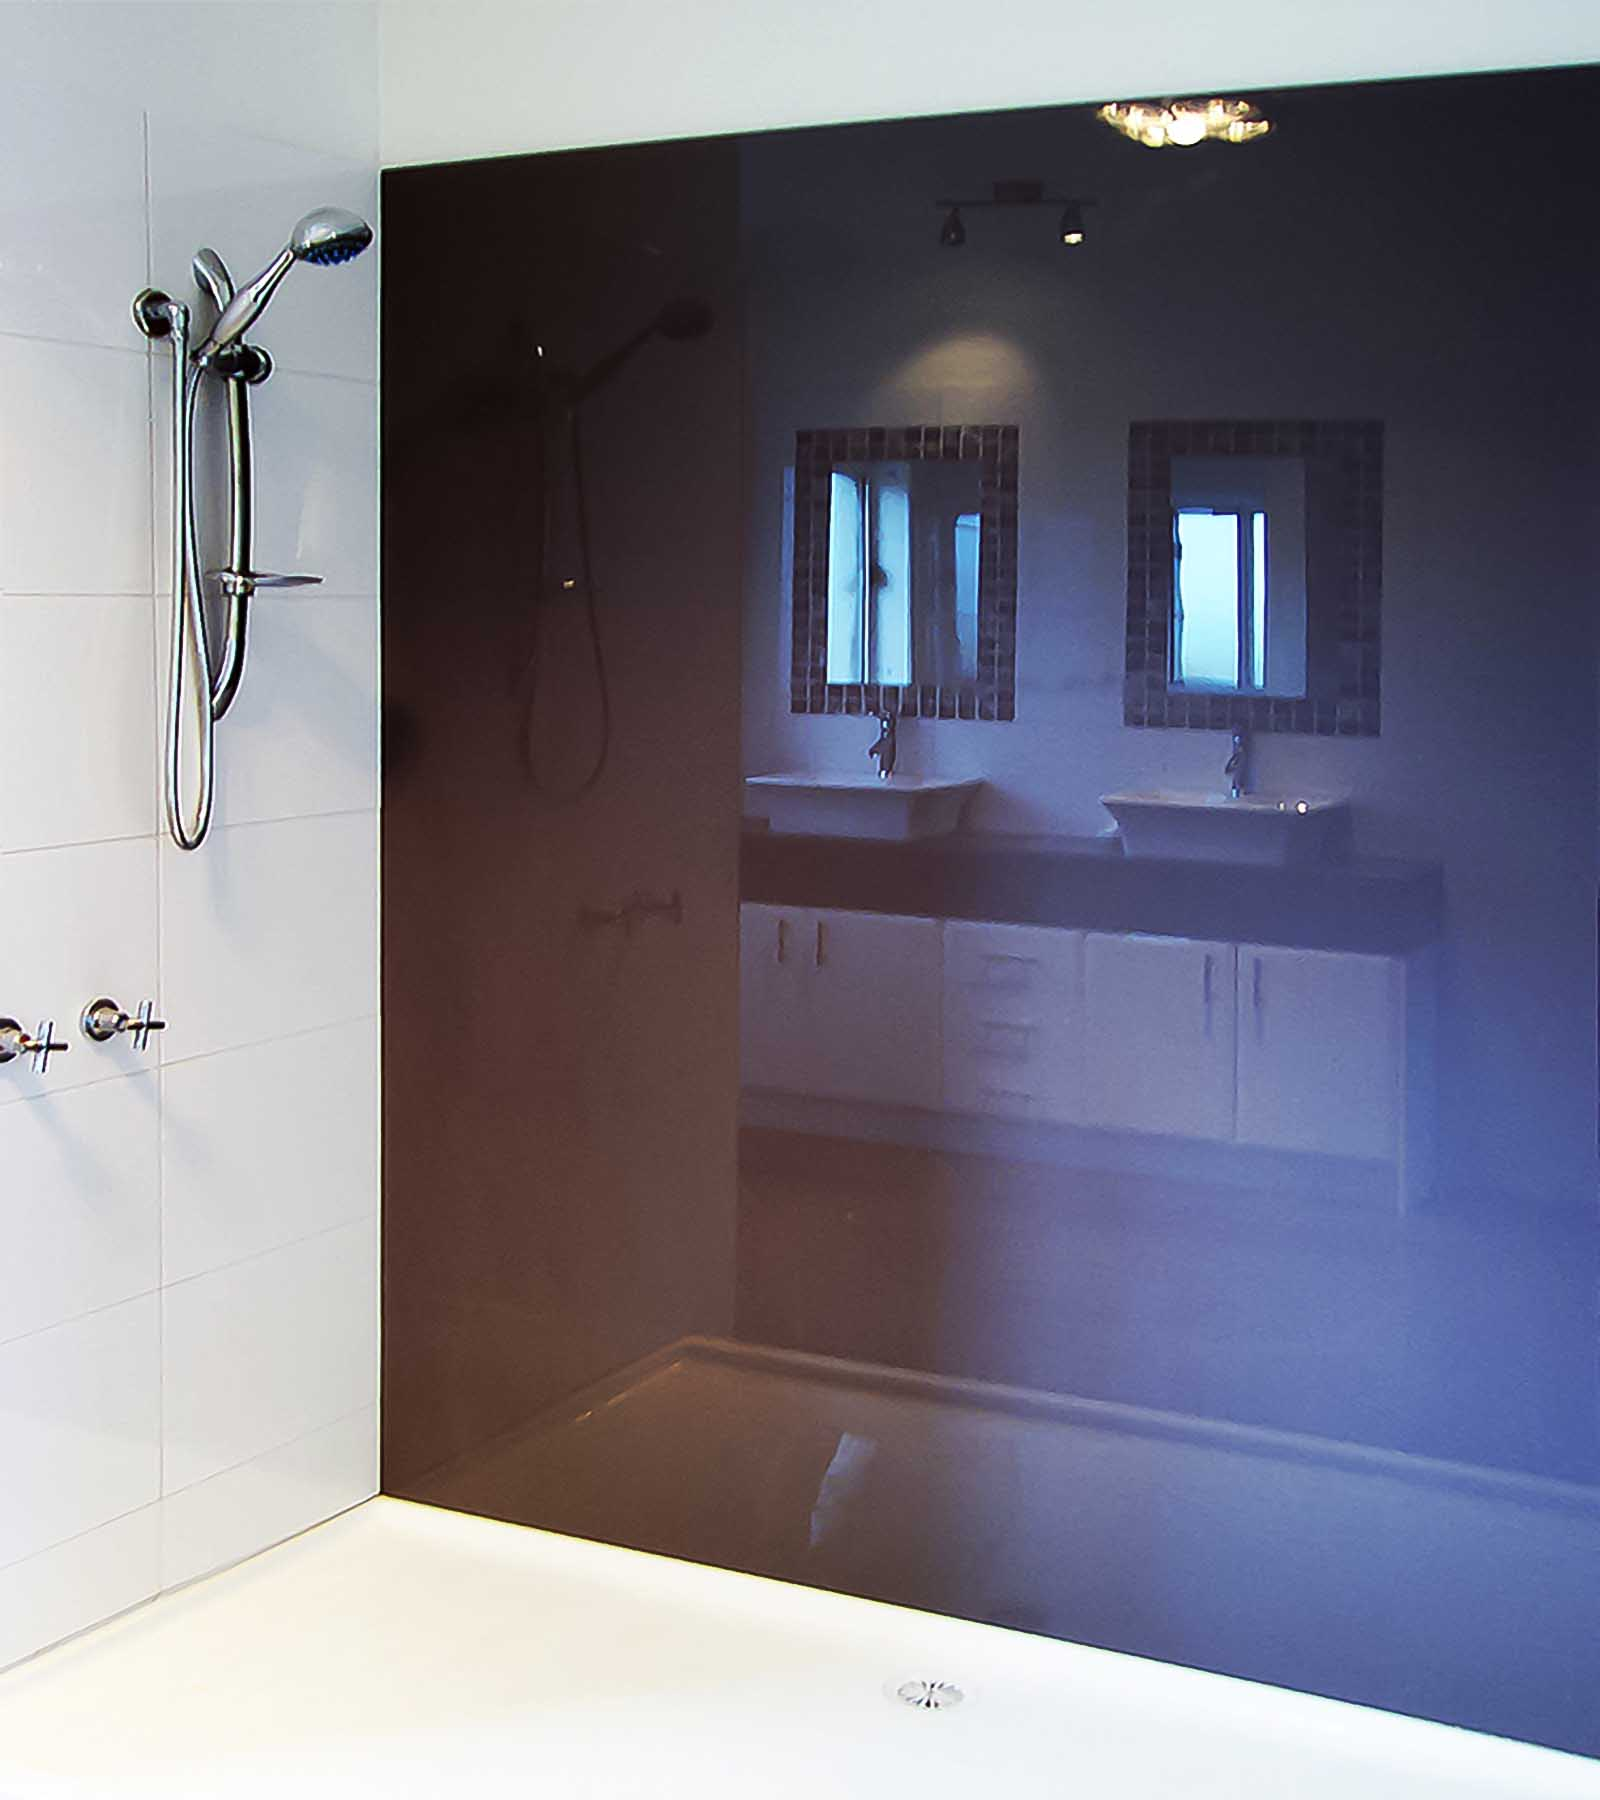 Glass splashbacks for bathroom sinks - Kolor Shower Wall Glass Splashbacks Bathroom Ensuite Teesdale Supplied Installed